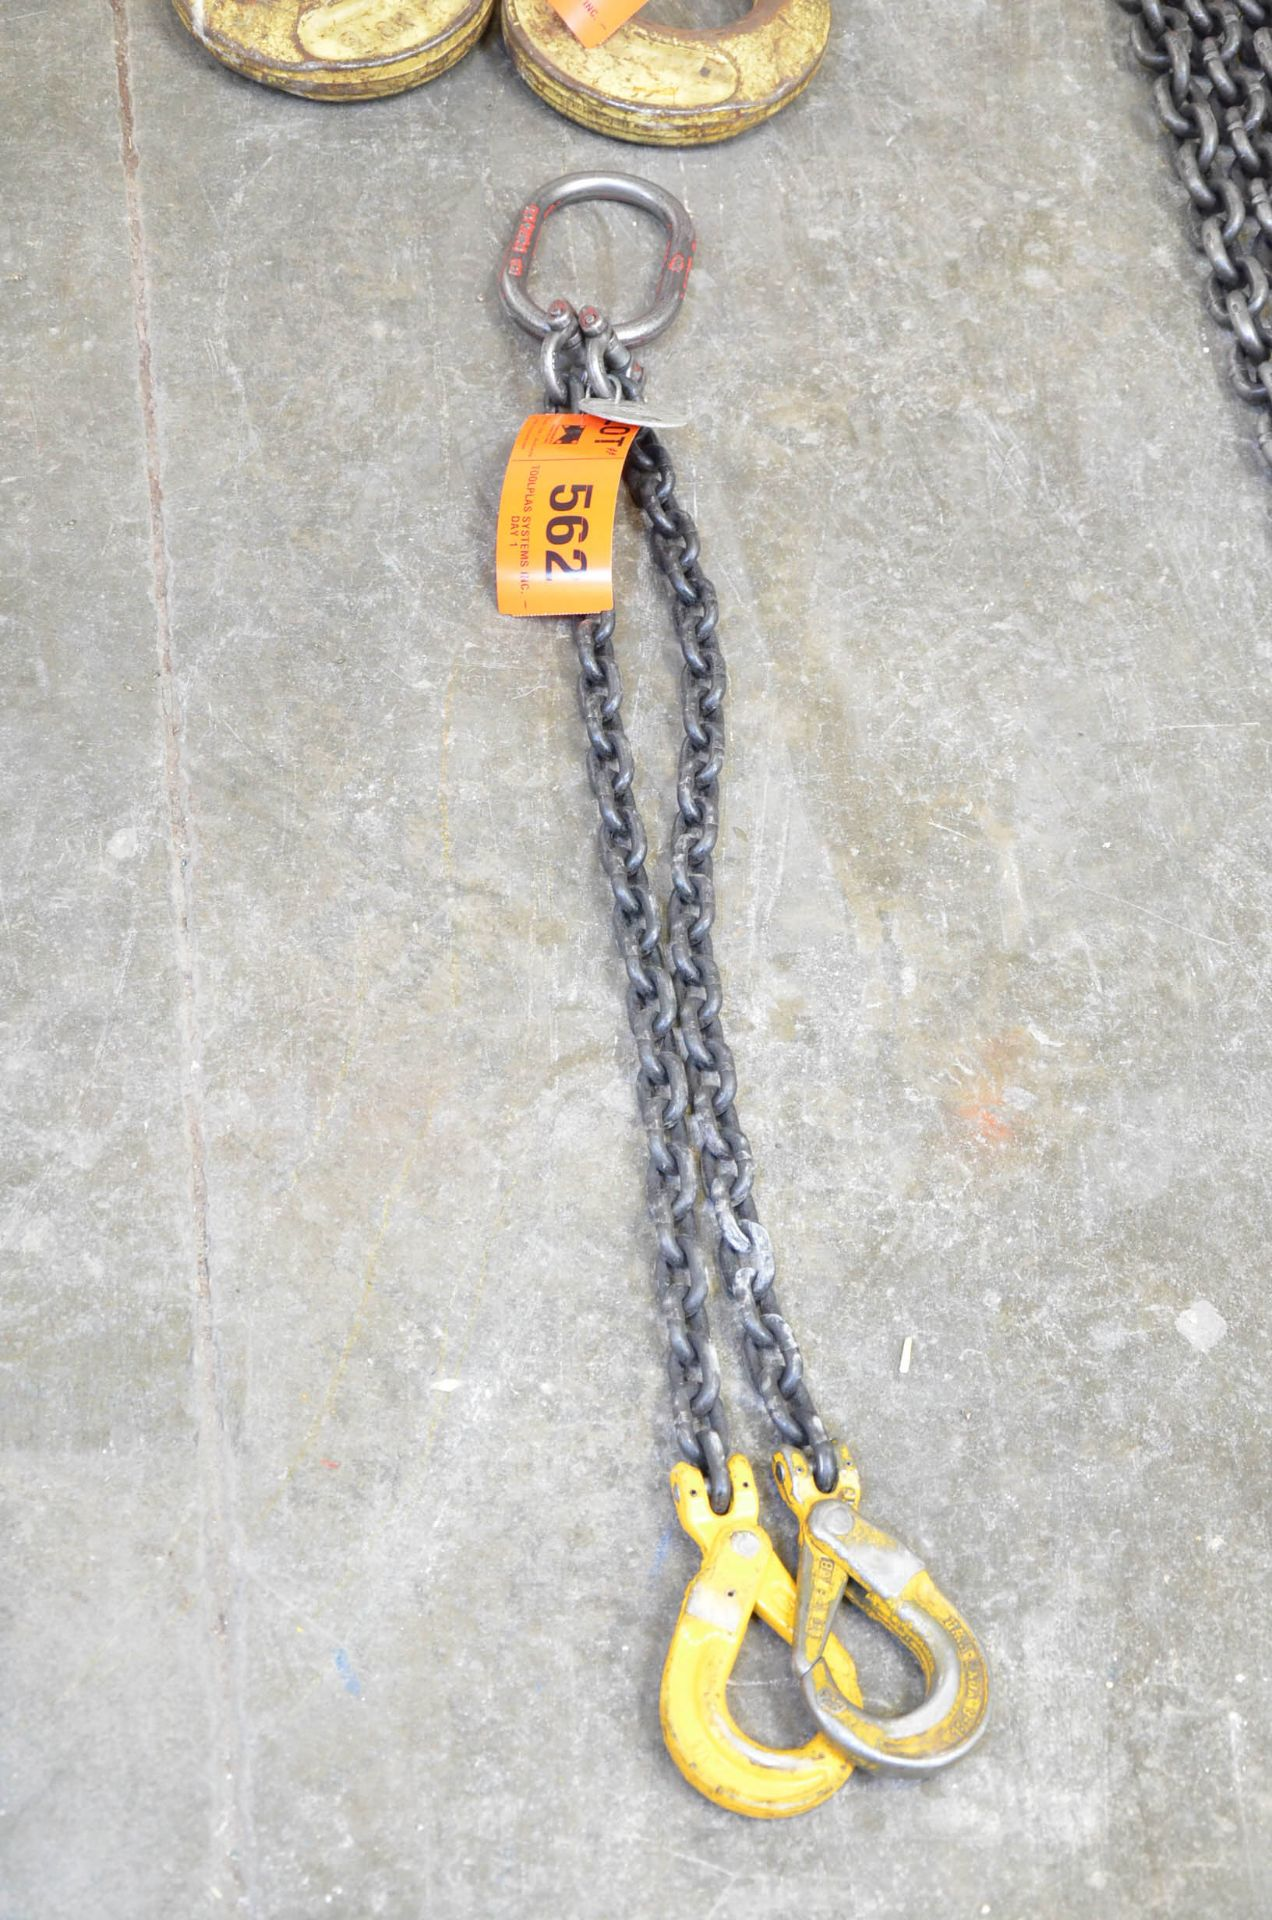 """3/8"""" x 4' 2-PART LIFTING CHAIN WITH 12,000 LBS CAP"""